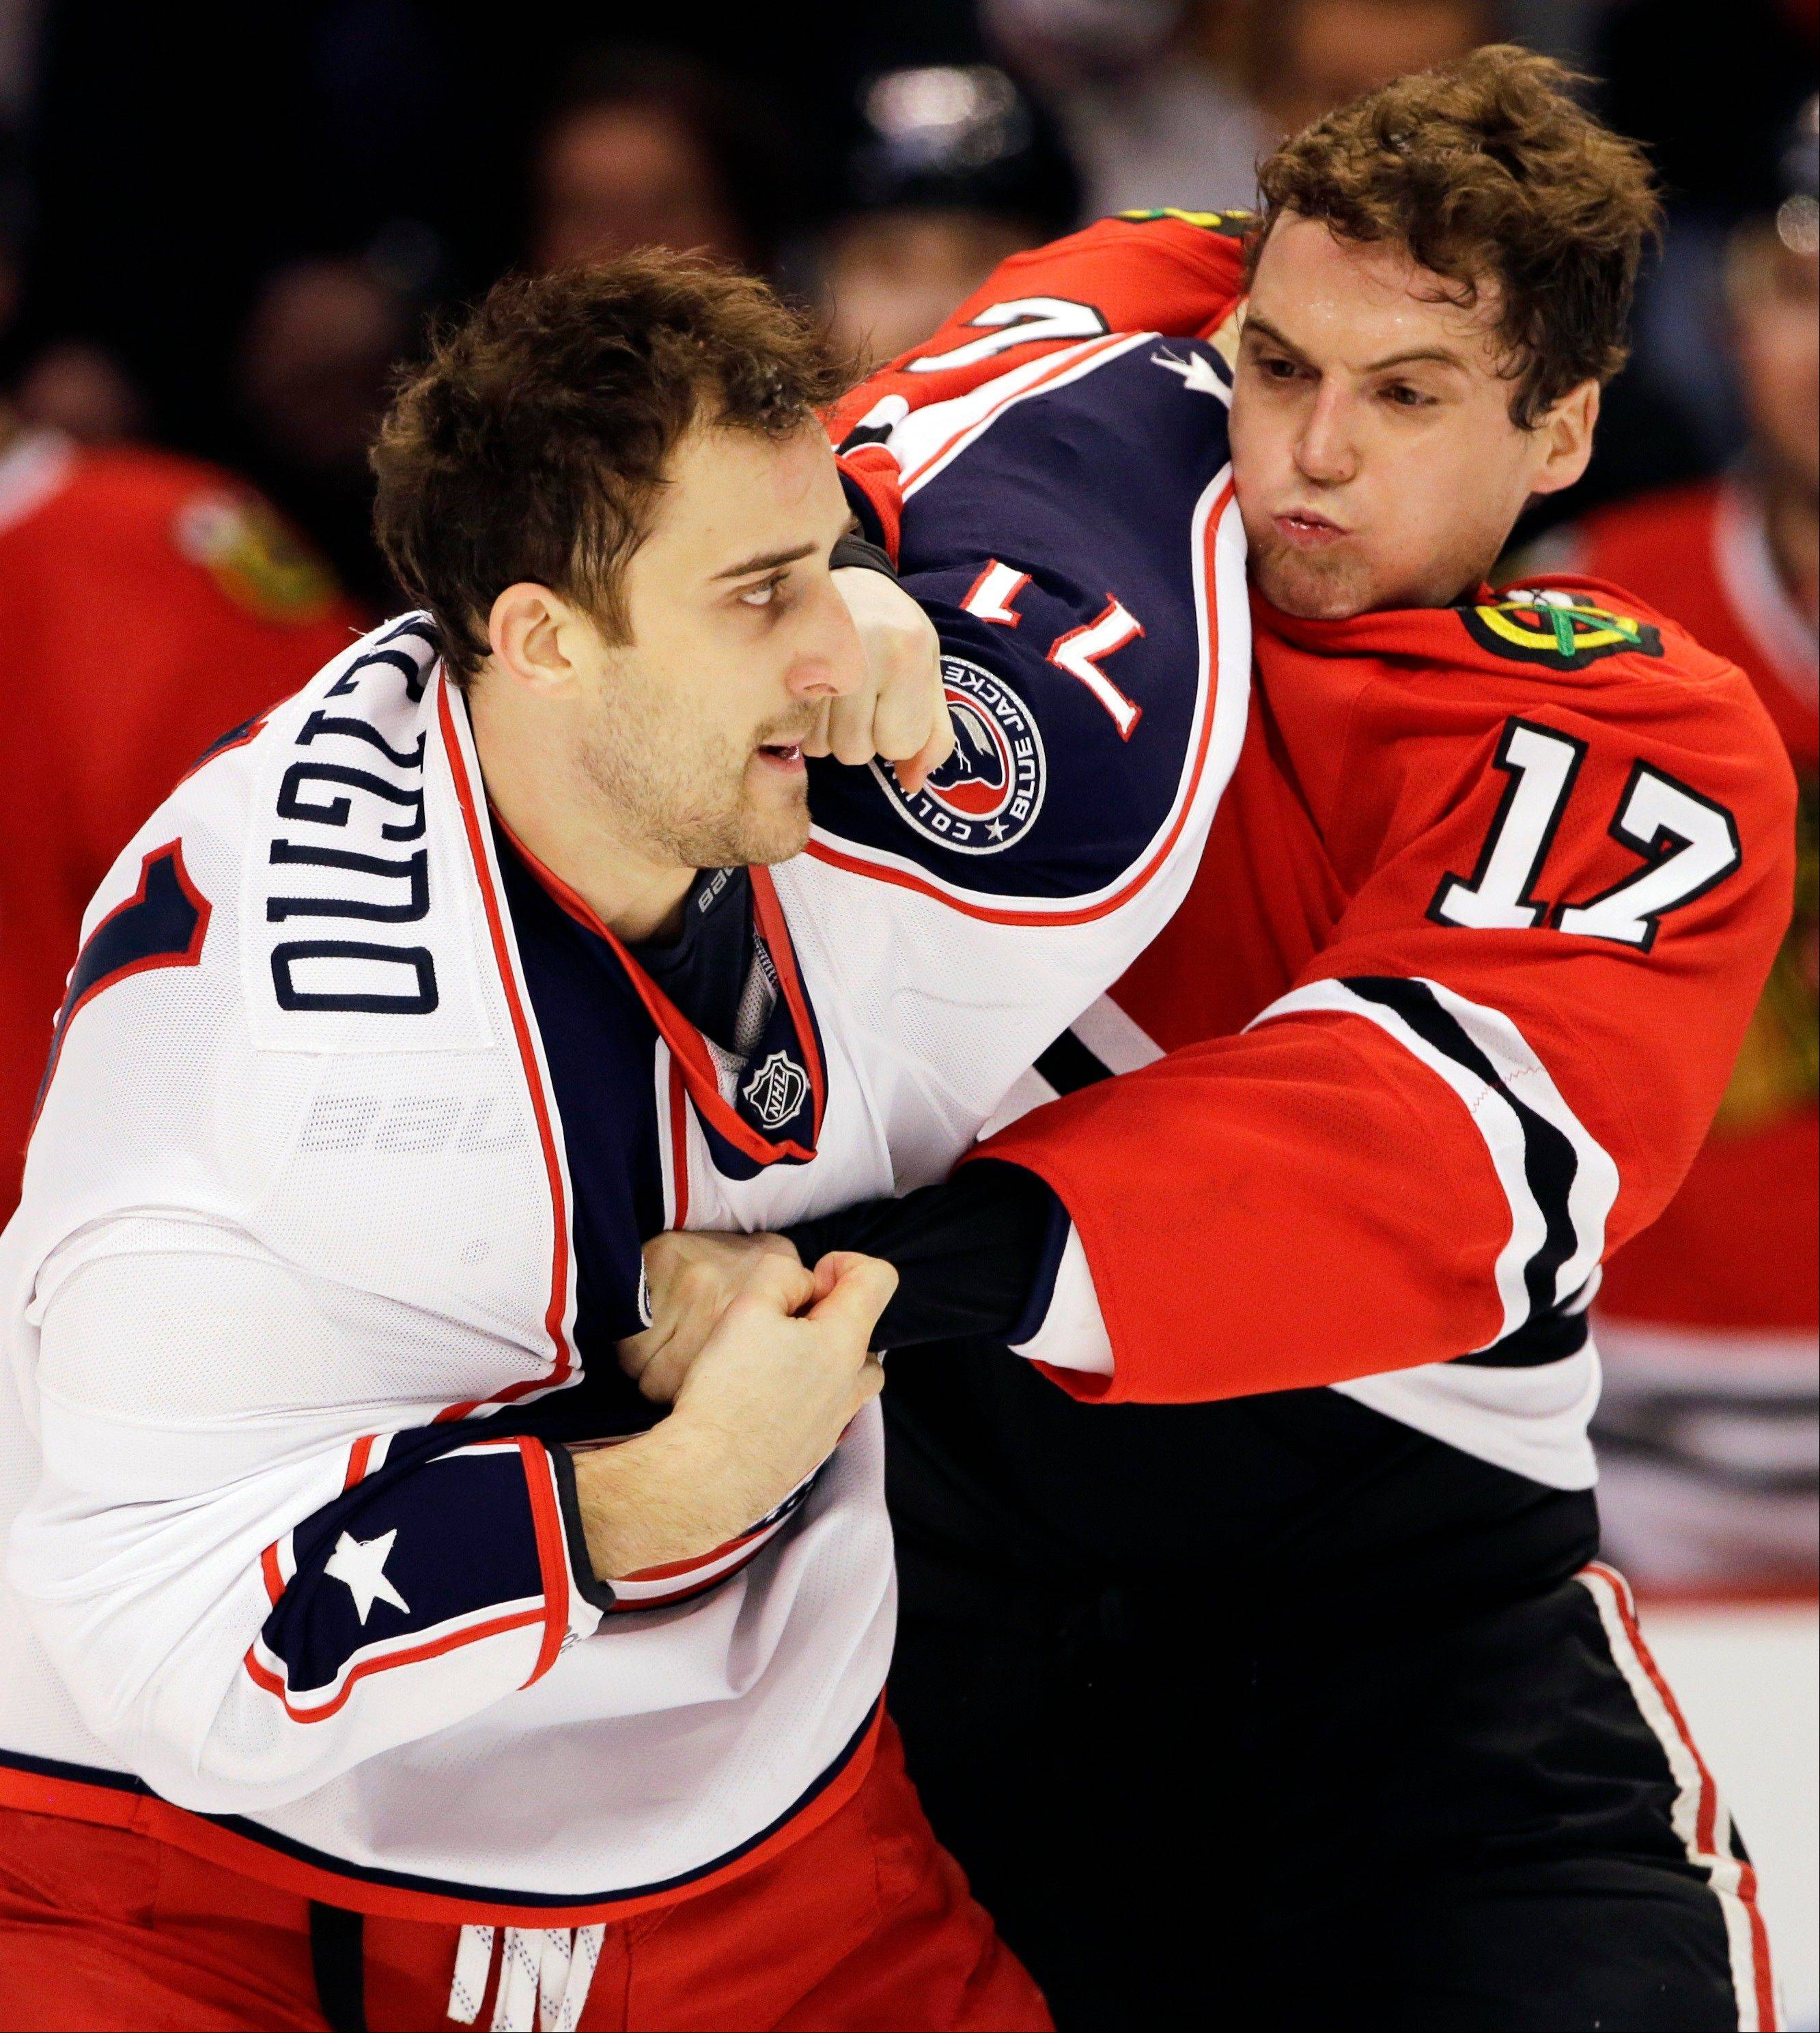 Chicago Blackhawks' Sheldon Brookbank, right, fights with Columbus Blue Jackets' Nick Foligno during the first period.